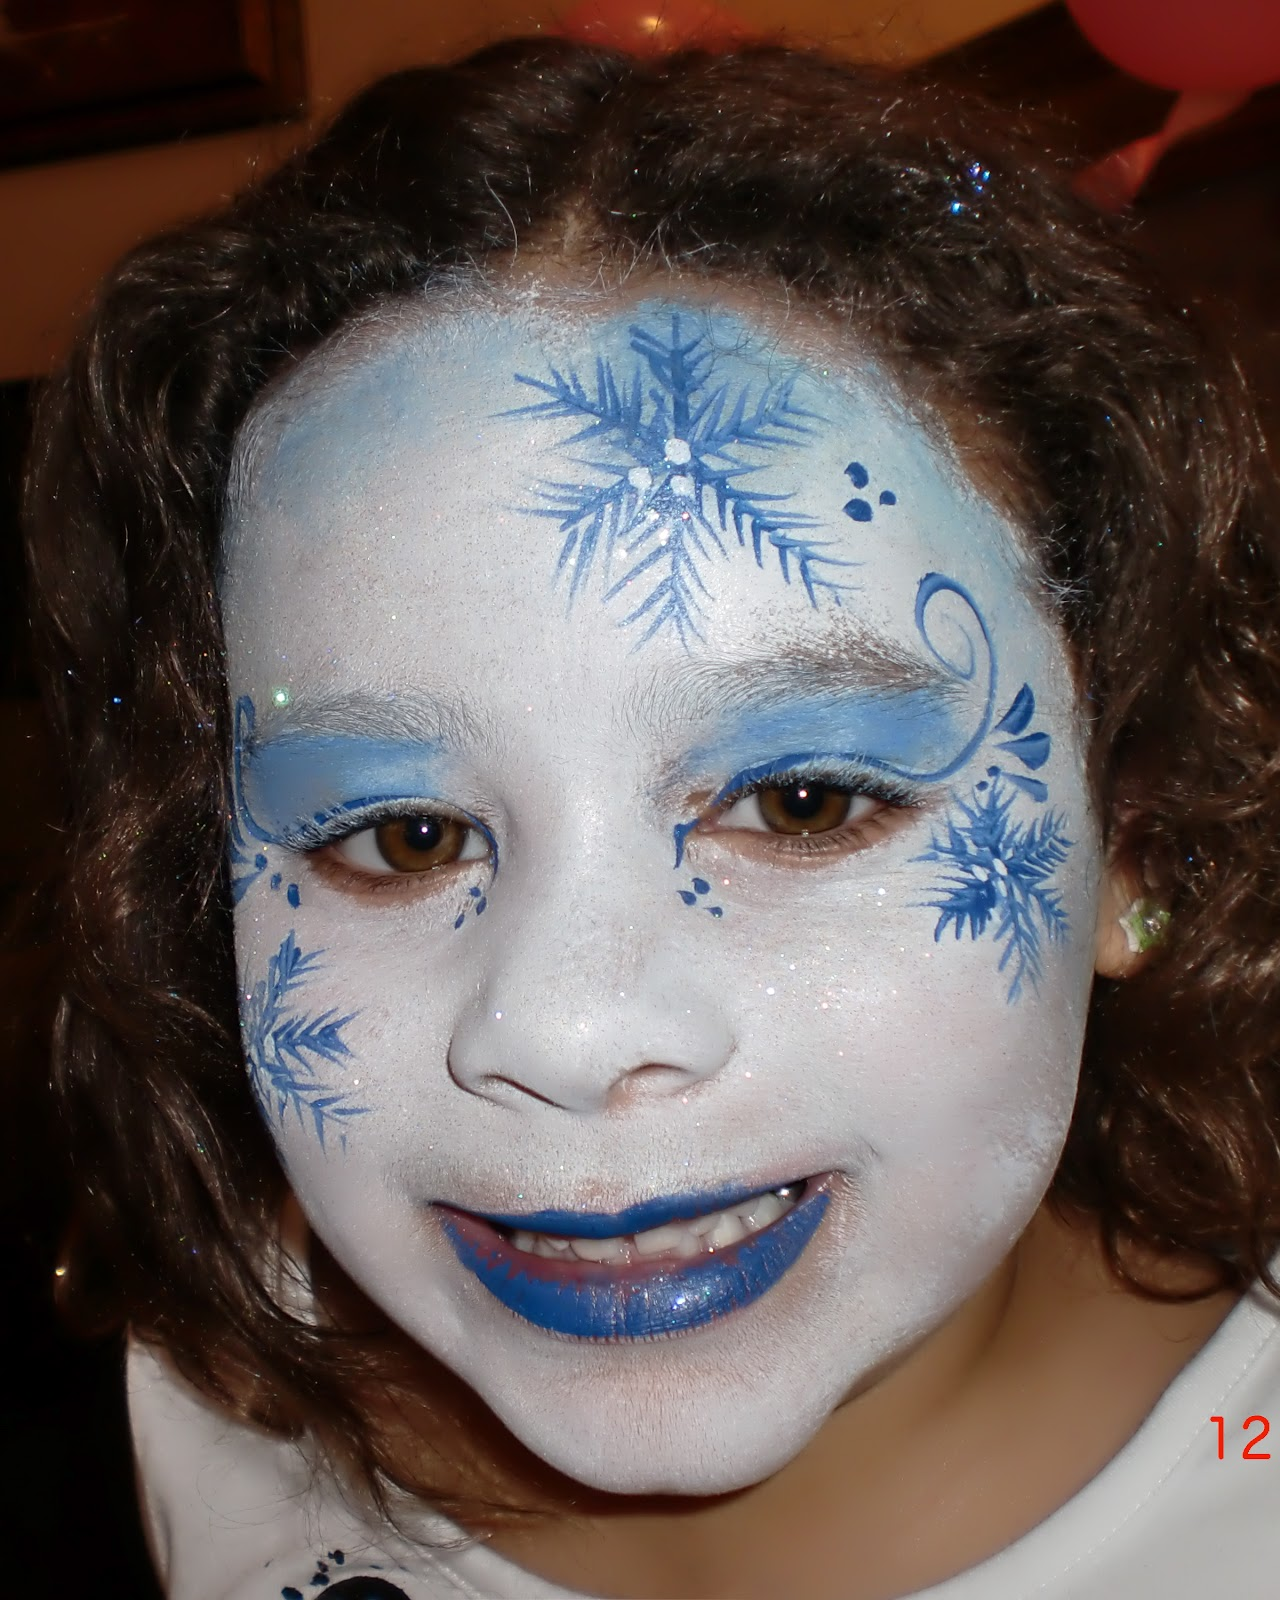 Face Paint The Story Of Makeup Amazon Co Uk Lisa: Face Painting Illusions And Balloon Art, LLC: Breakfast